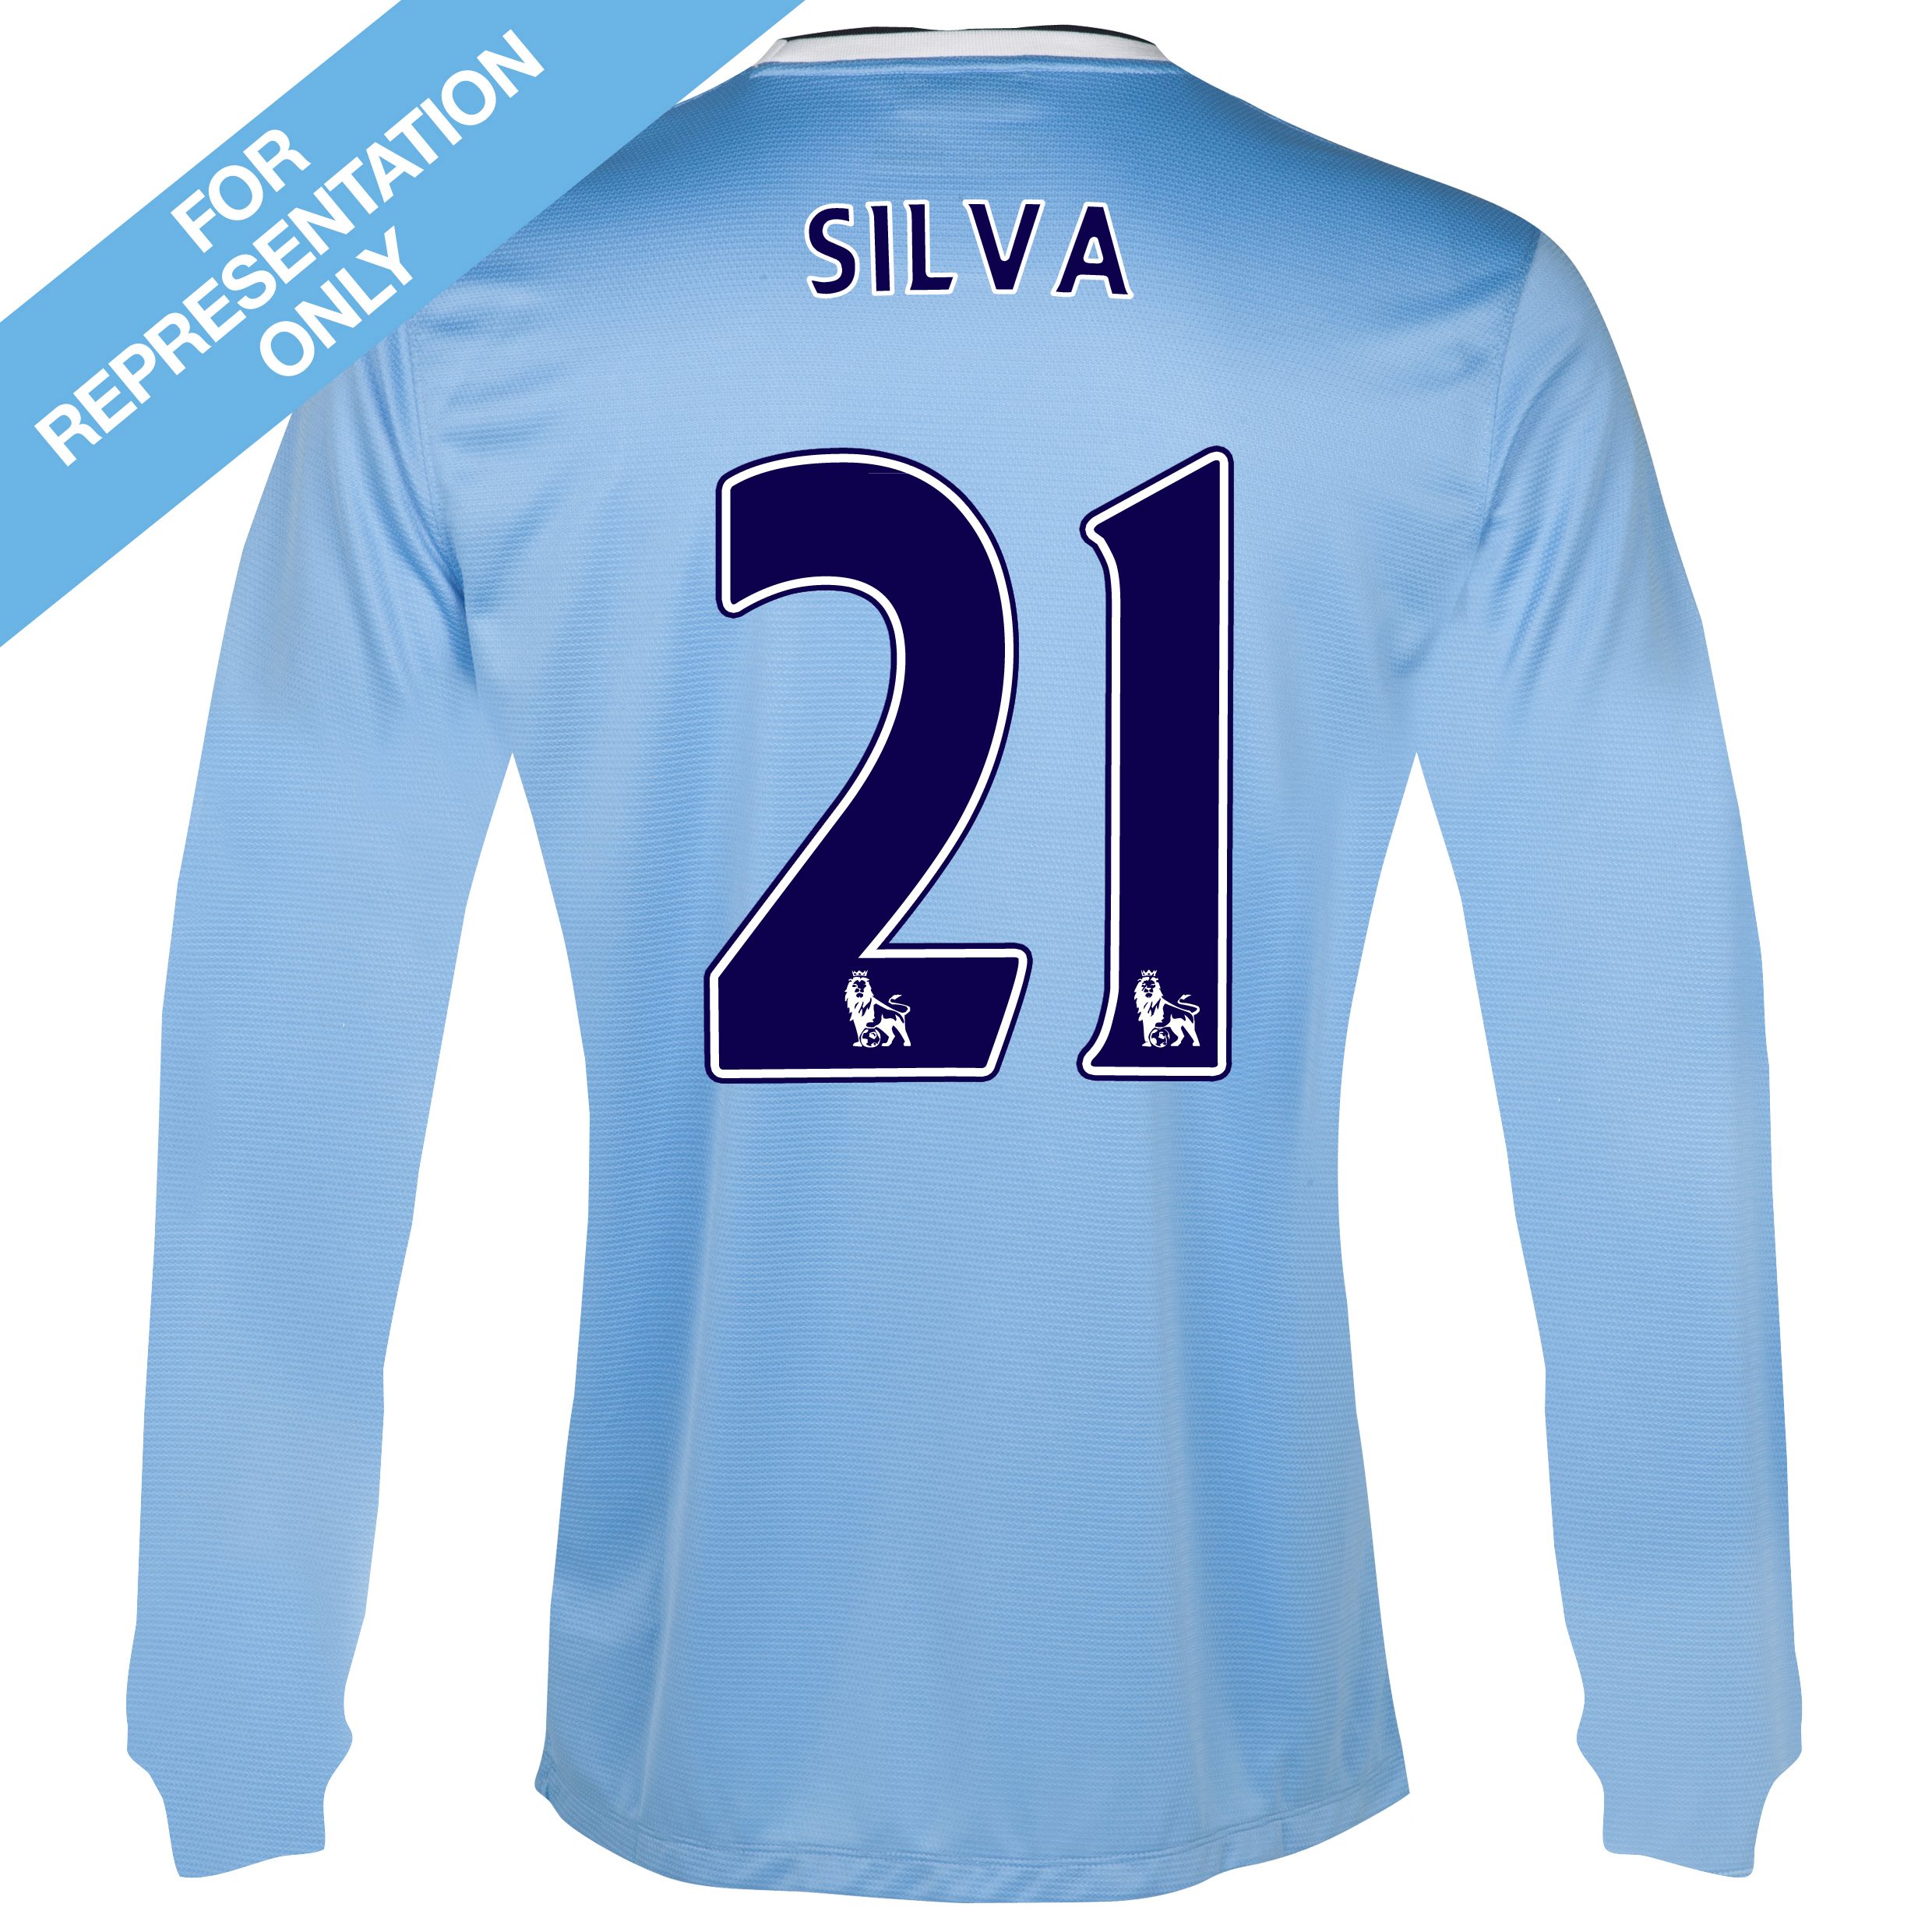 Manchester City Home Shirt 2013/14 - Long Sleeved - Junior with Silva 21 printing